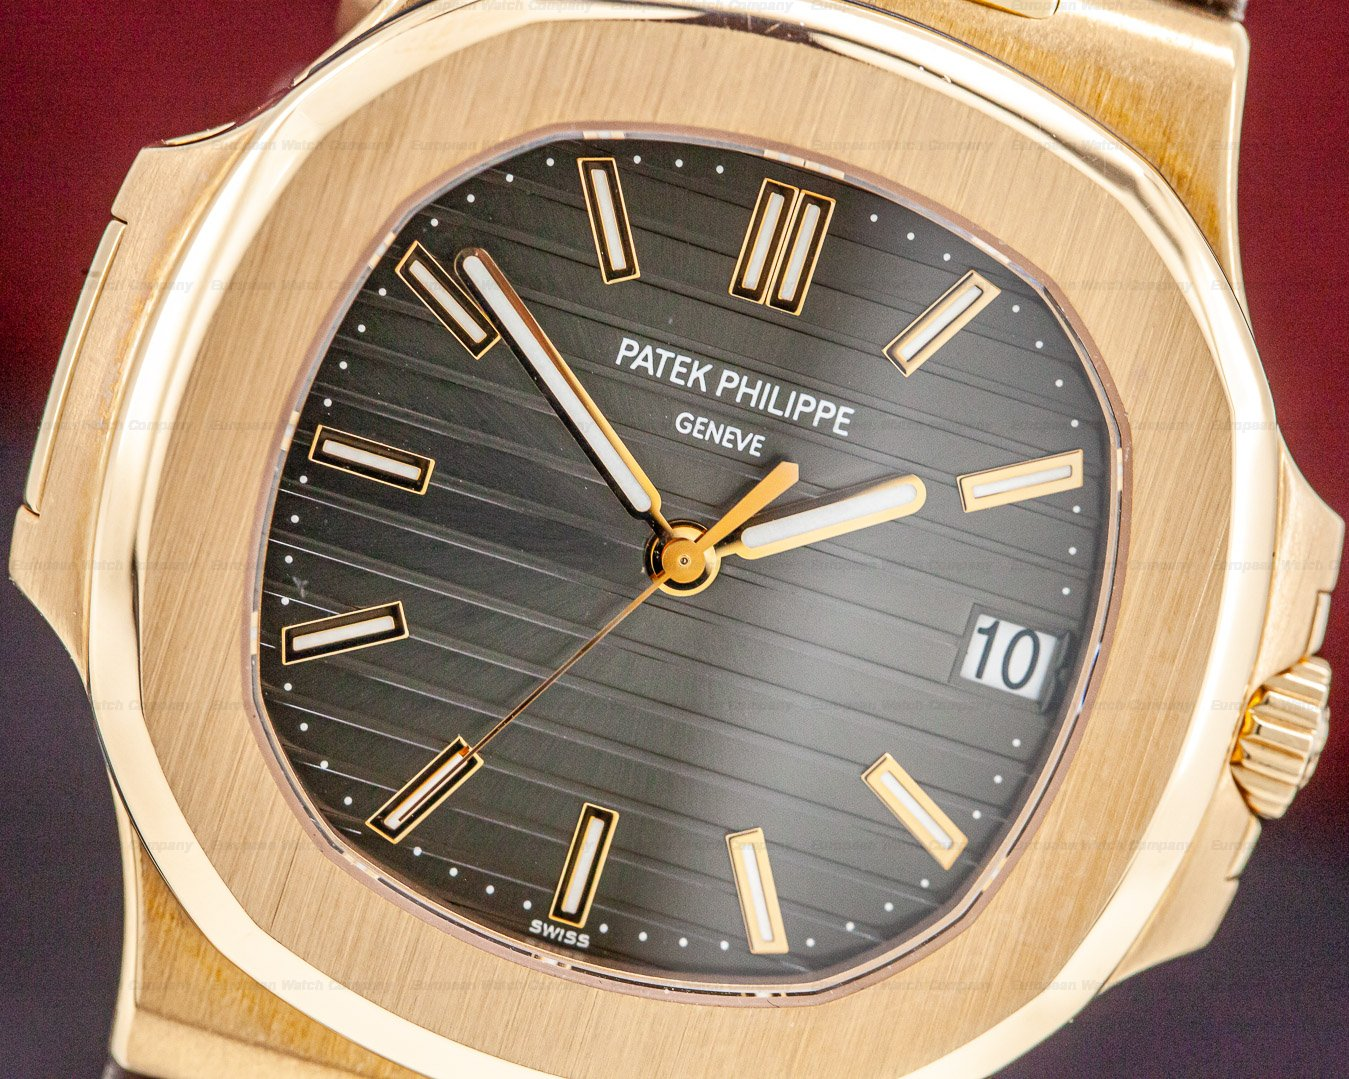 Patek Philippe 5711R-001 Nautilus 18K Rose Gold / Alligator Strap